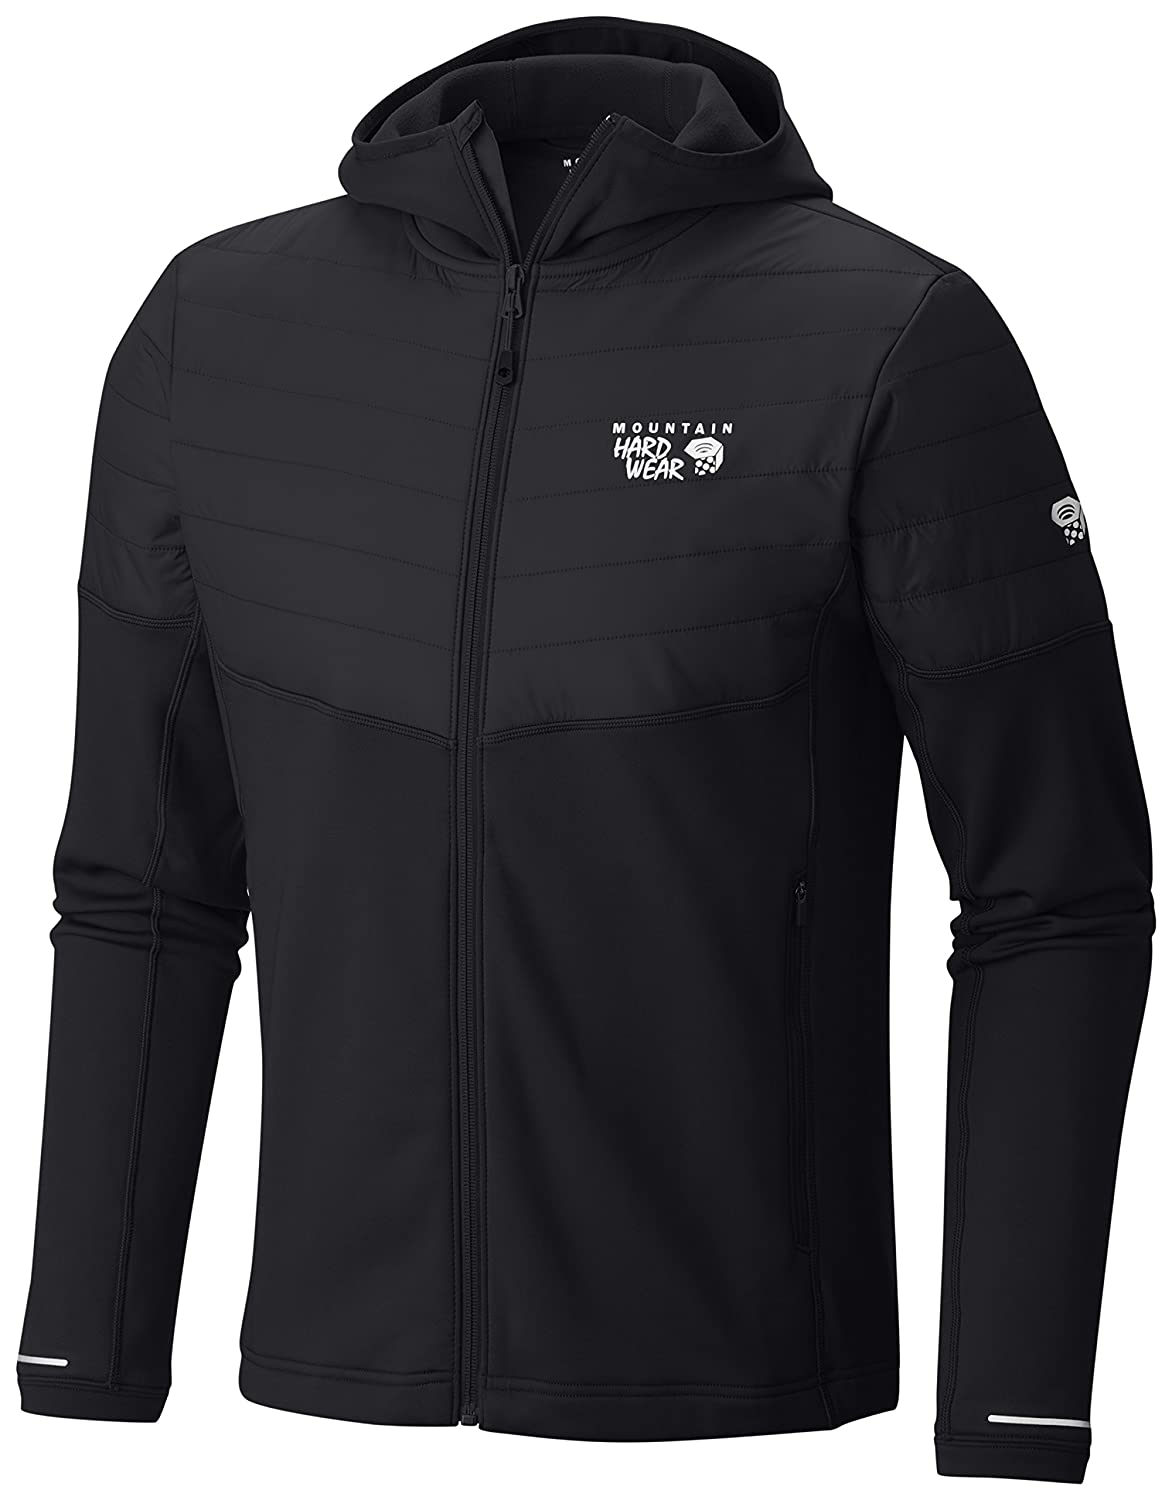 TALLA M. Mountain Hardwear 32 Insulated Hooded, Chaqueta con